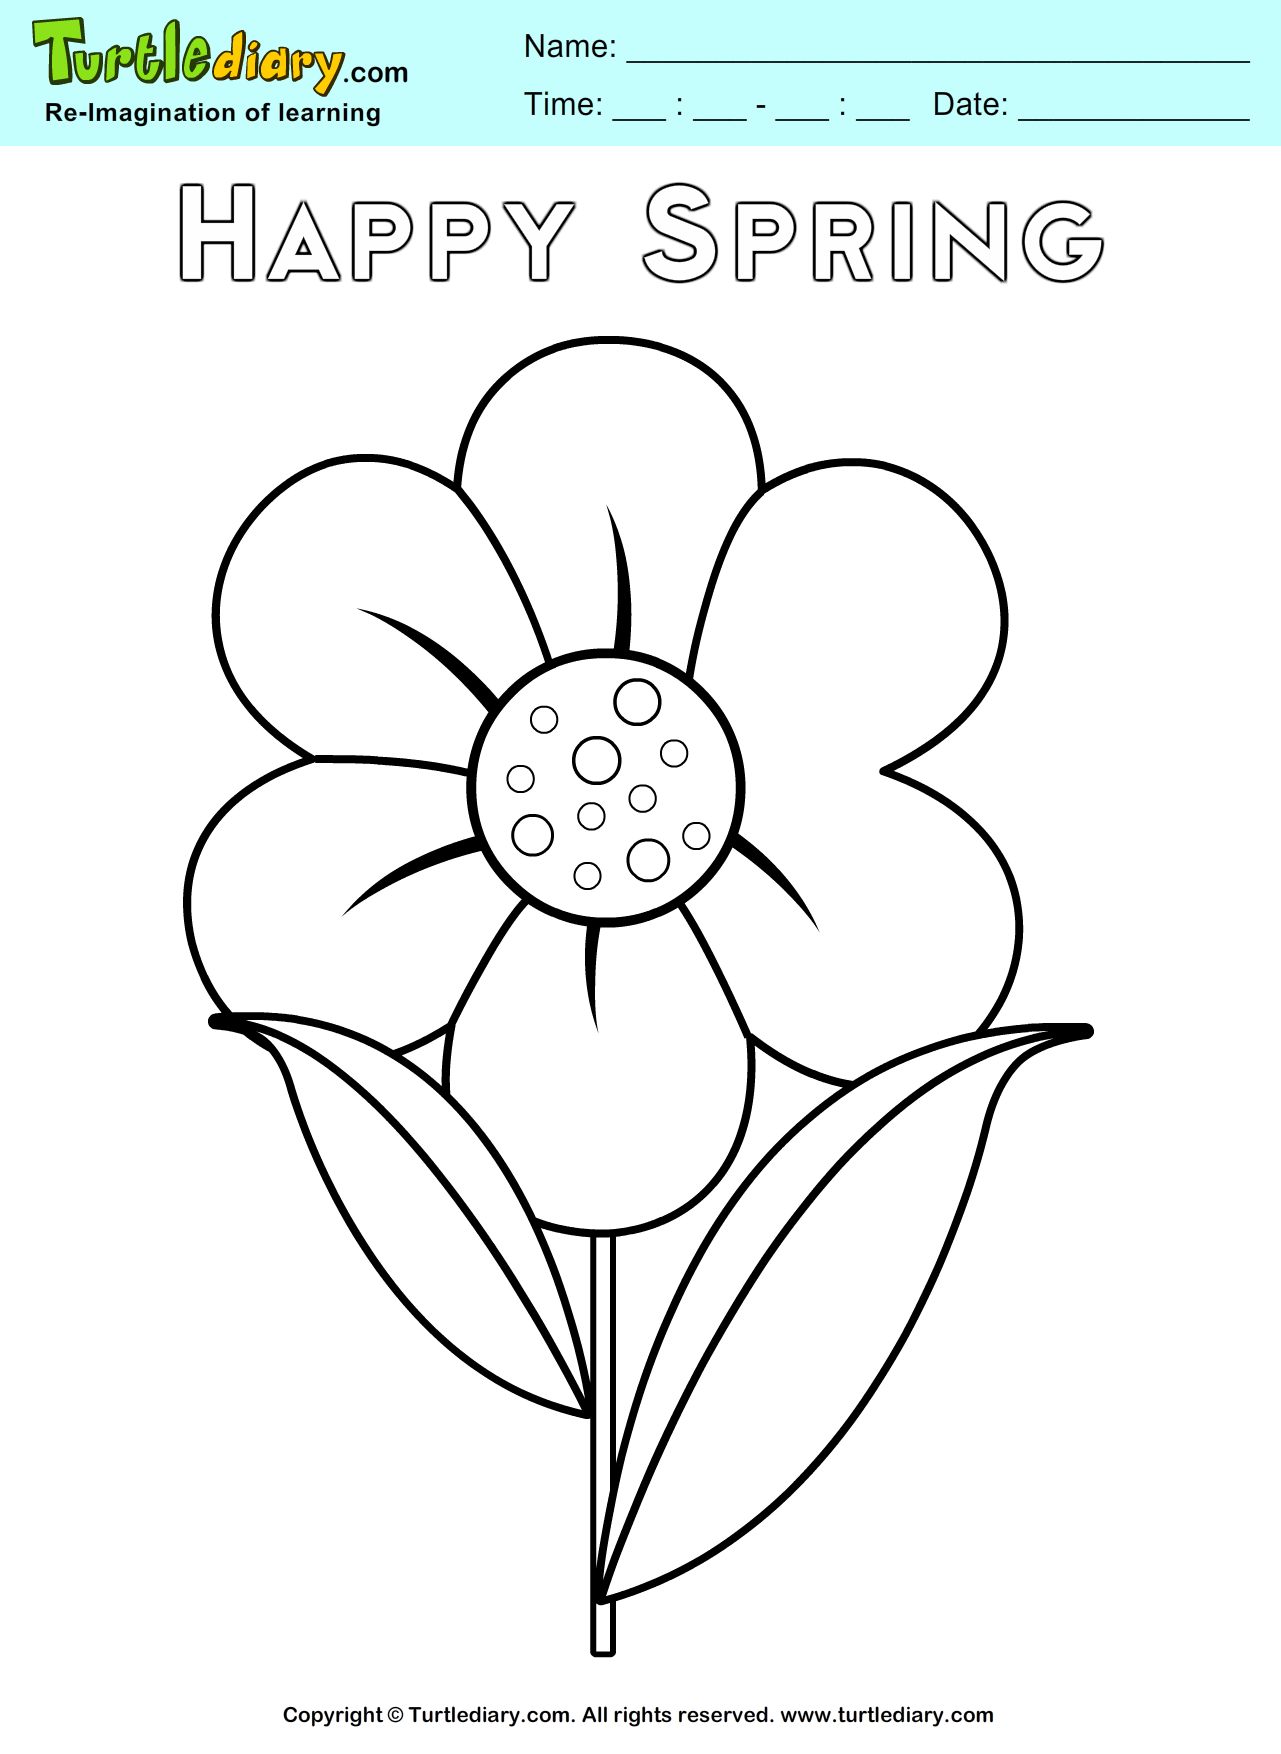 Spring Flower Coloring Sheet Coloring Sheet Flower Coloring Sheets Flower Coloring Pages Spring Coloring Pages